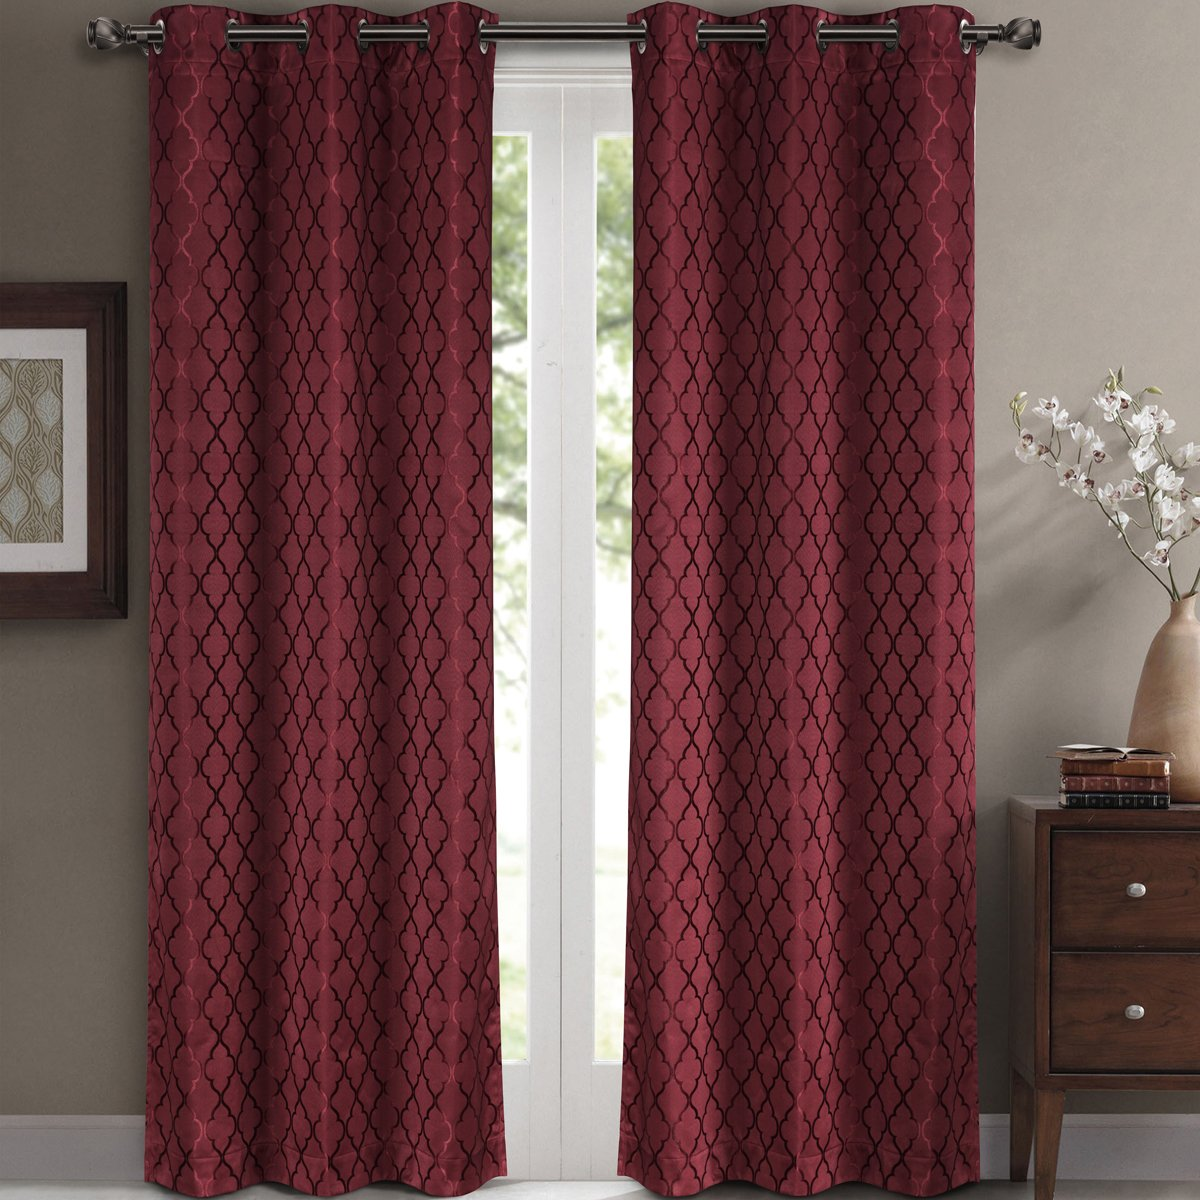 Amazon Willow Jacquard Burgundy Grommet Blackout Window Curtain Panels Pair Set Of 2 42x84 Inches Each By Royal Hotel Home Kitchen